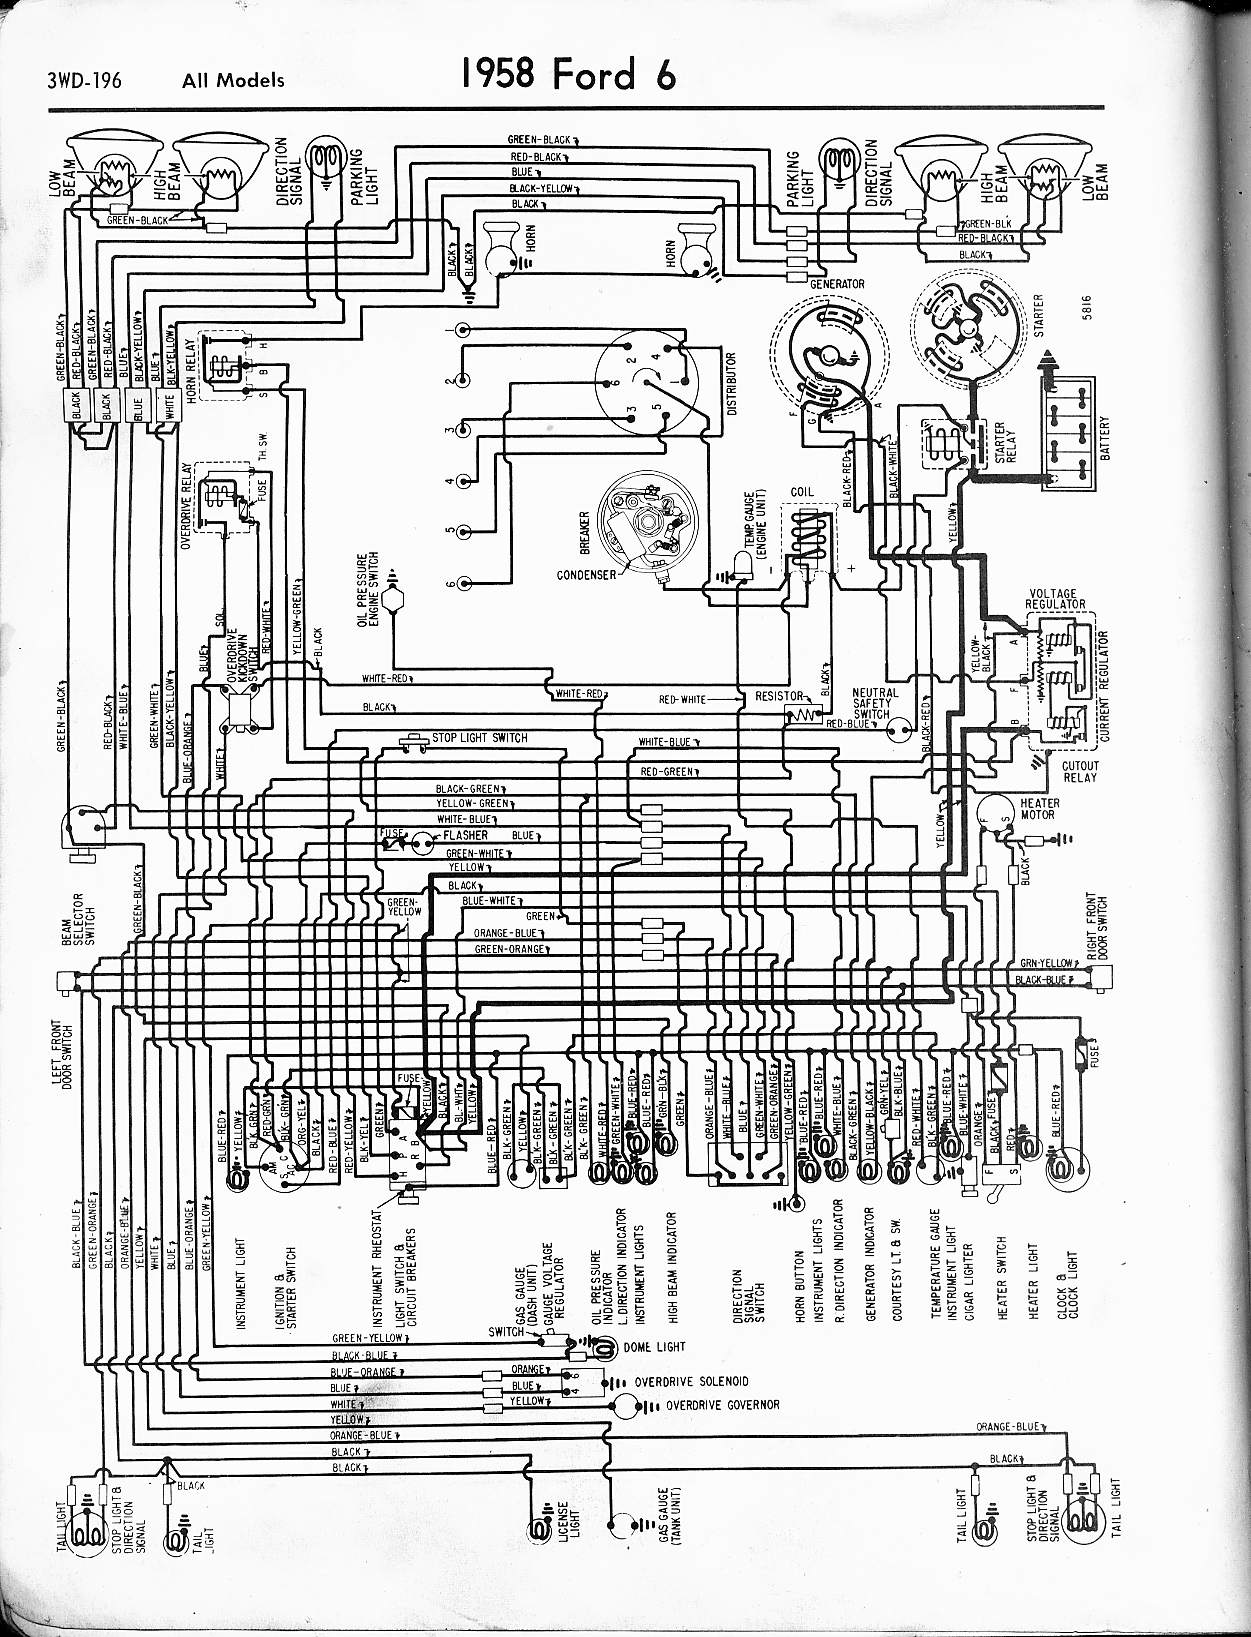 MWire5765 196 www oldcarmanualproject com tocmp wiring 5765wirin 84 Ford Thunderbird Wiring Diagram at gsmx.co